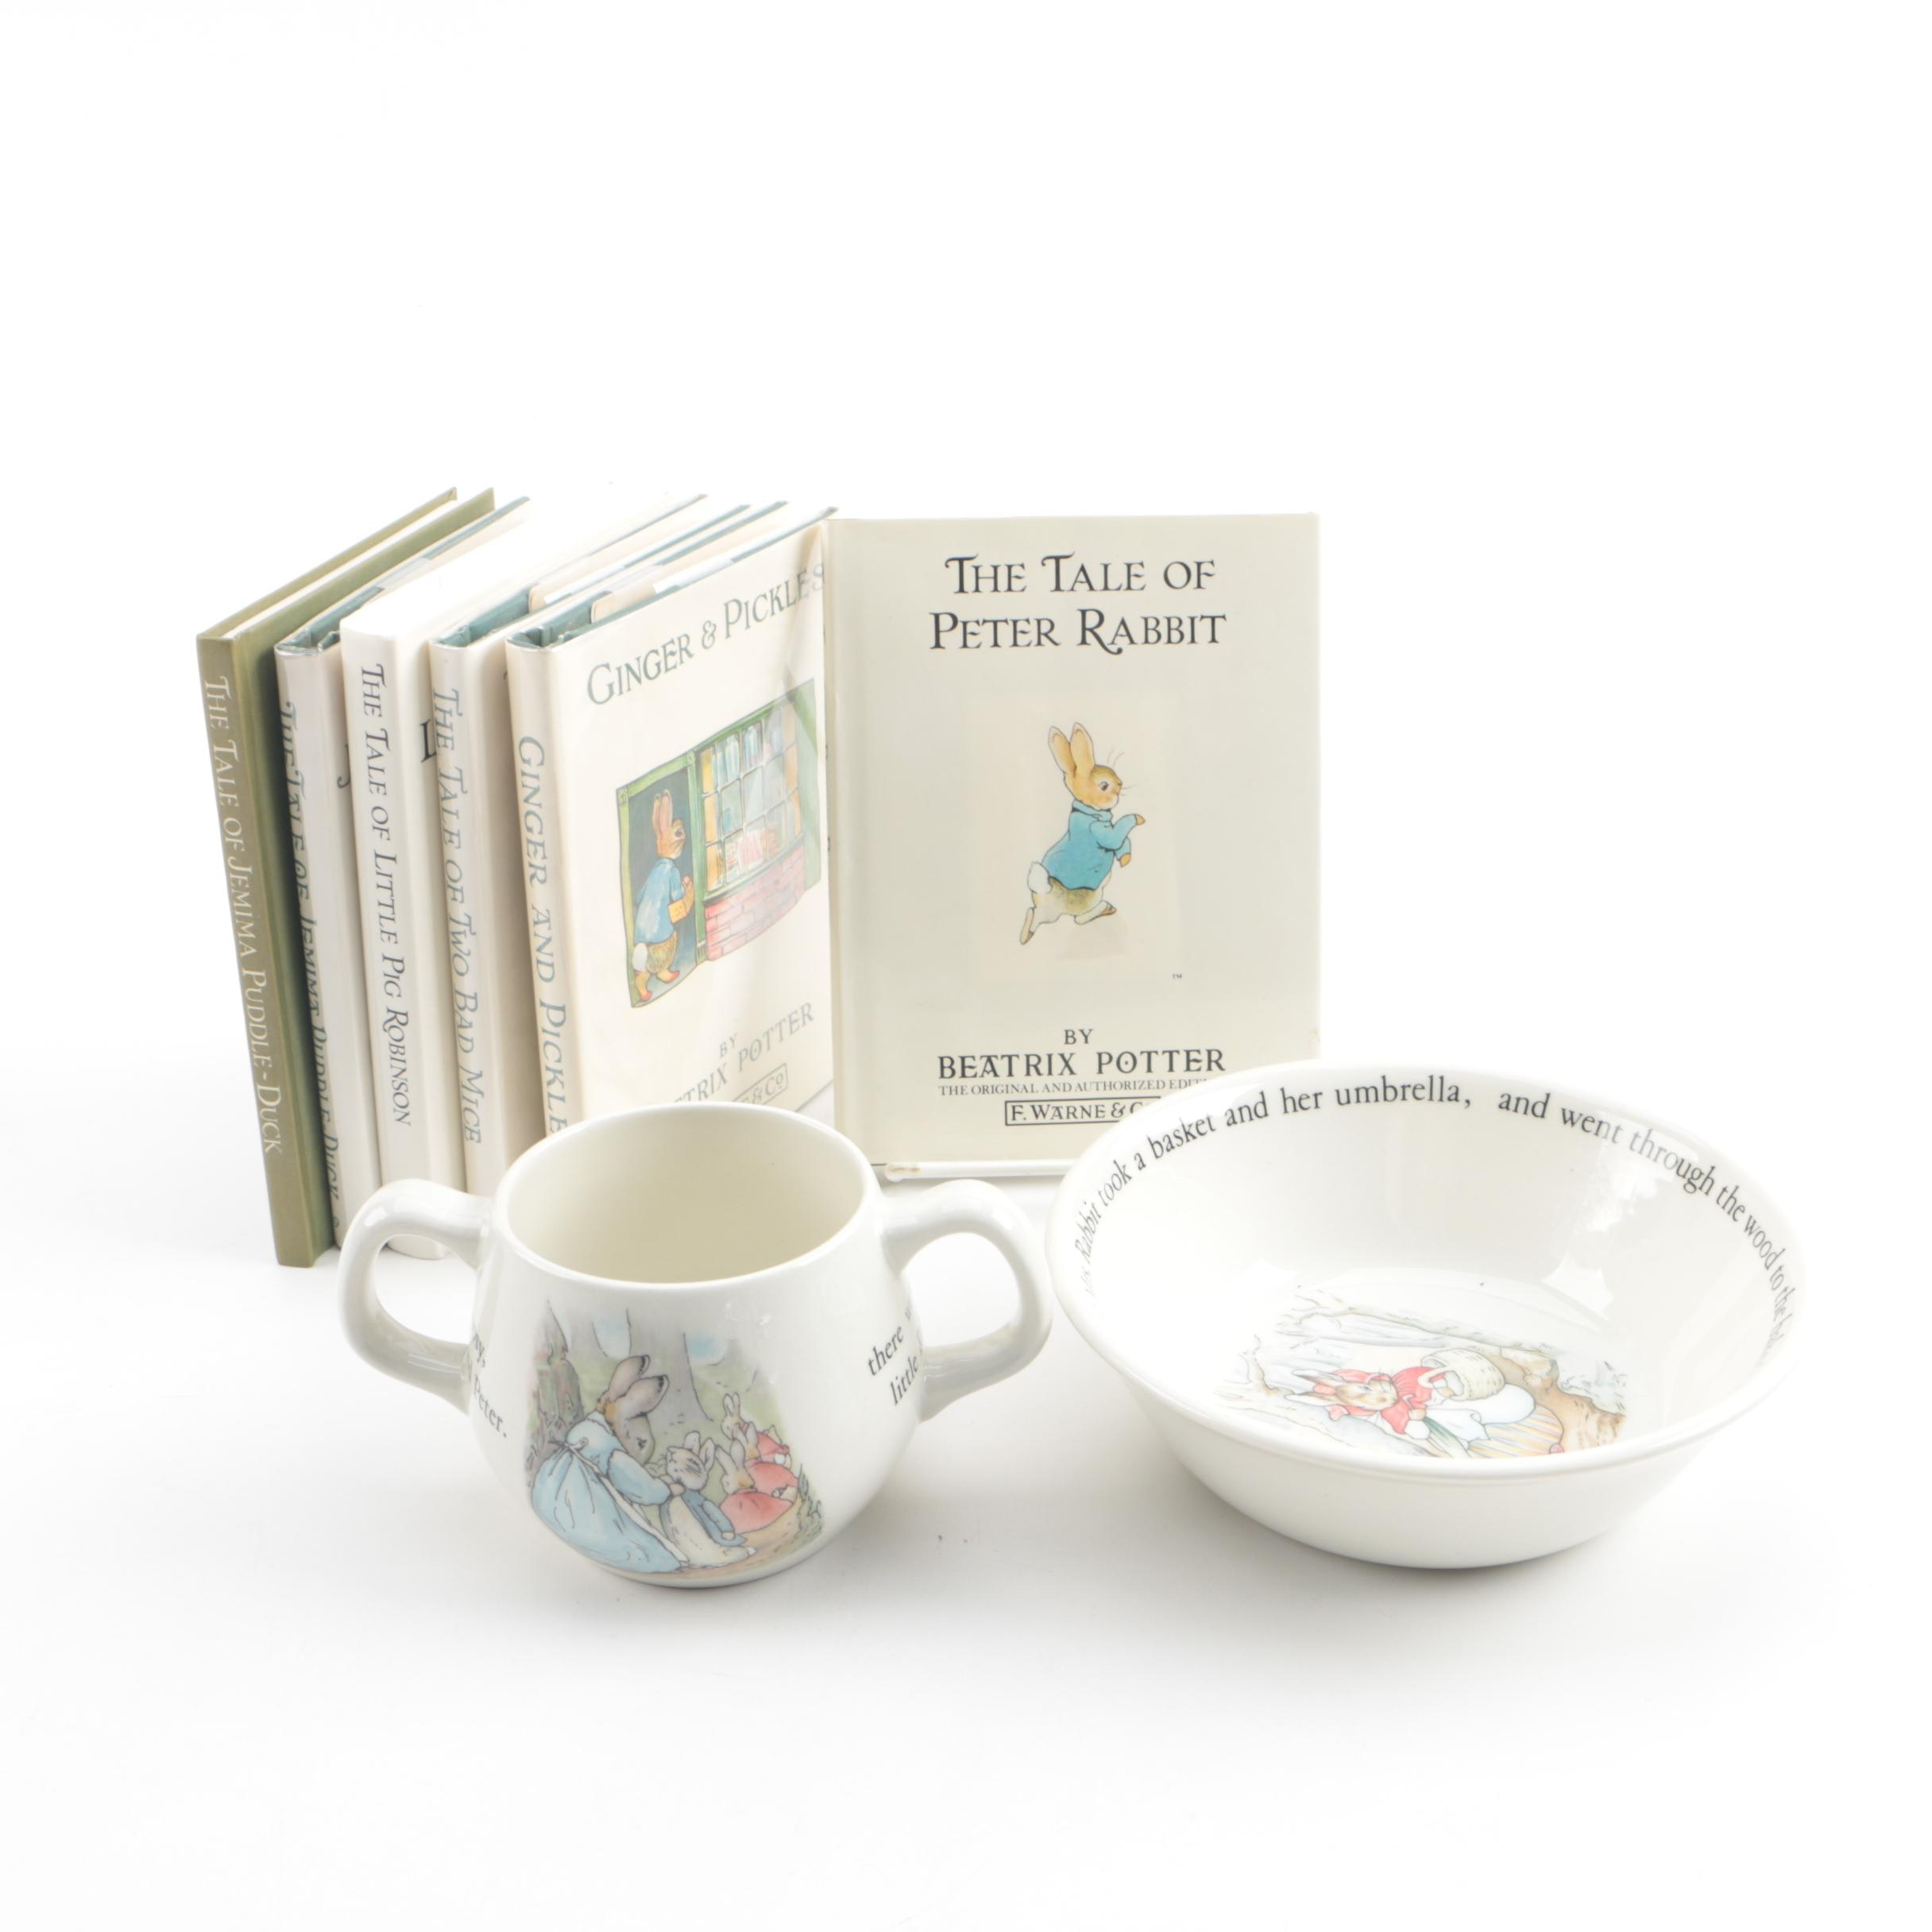 Beatrix Potter Books and Wedgwood Child's Bowl and Cup